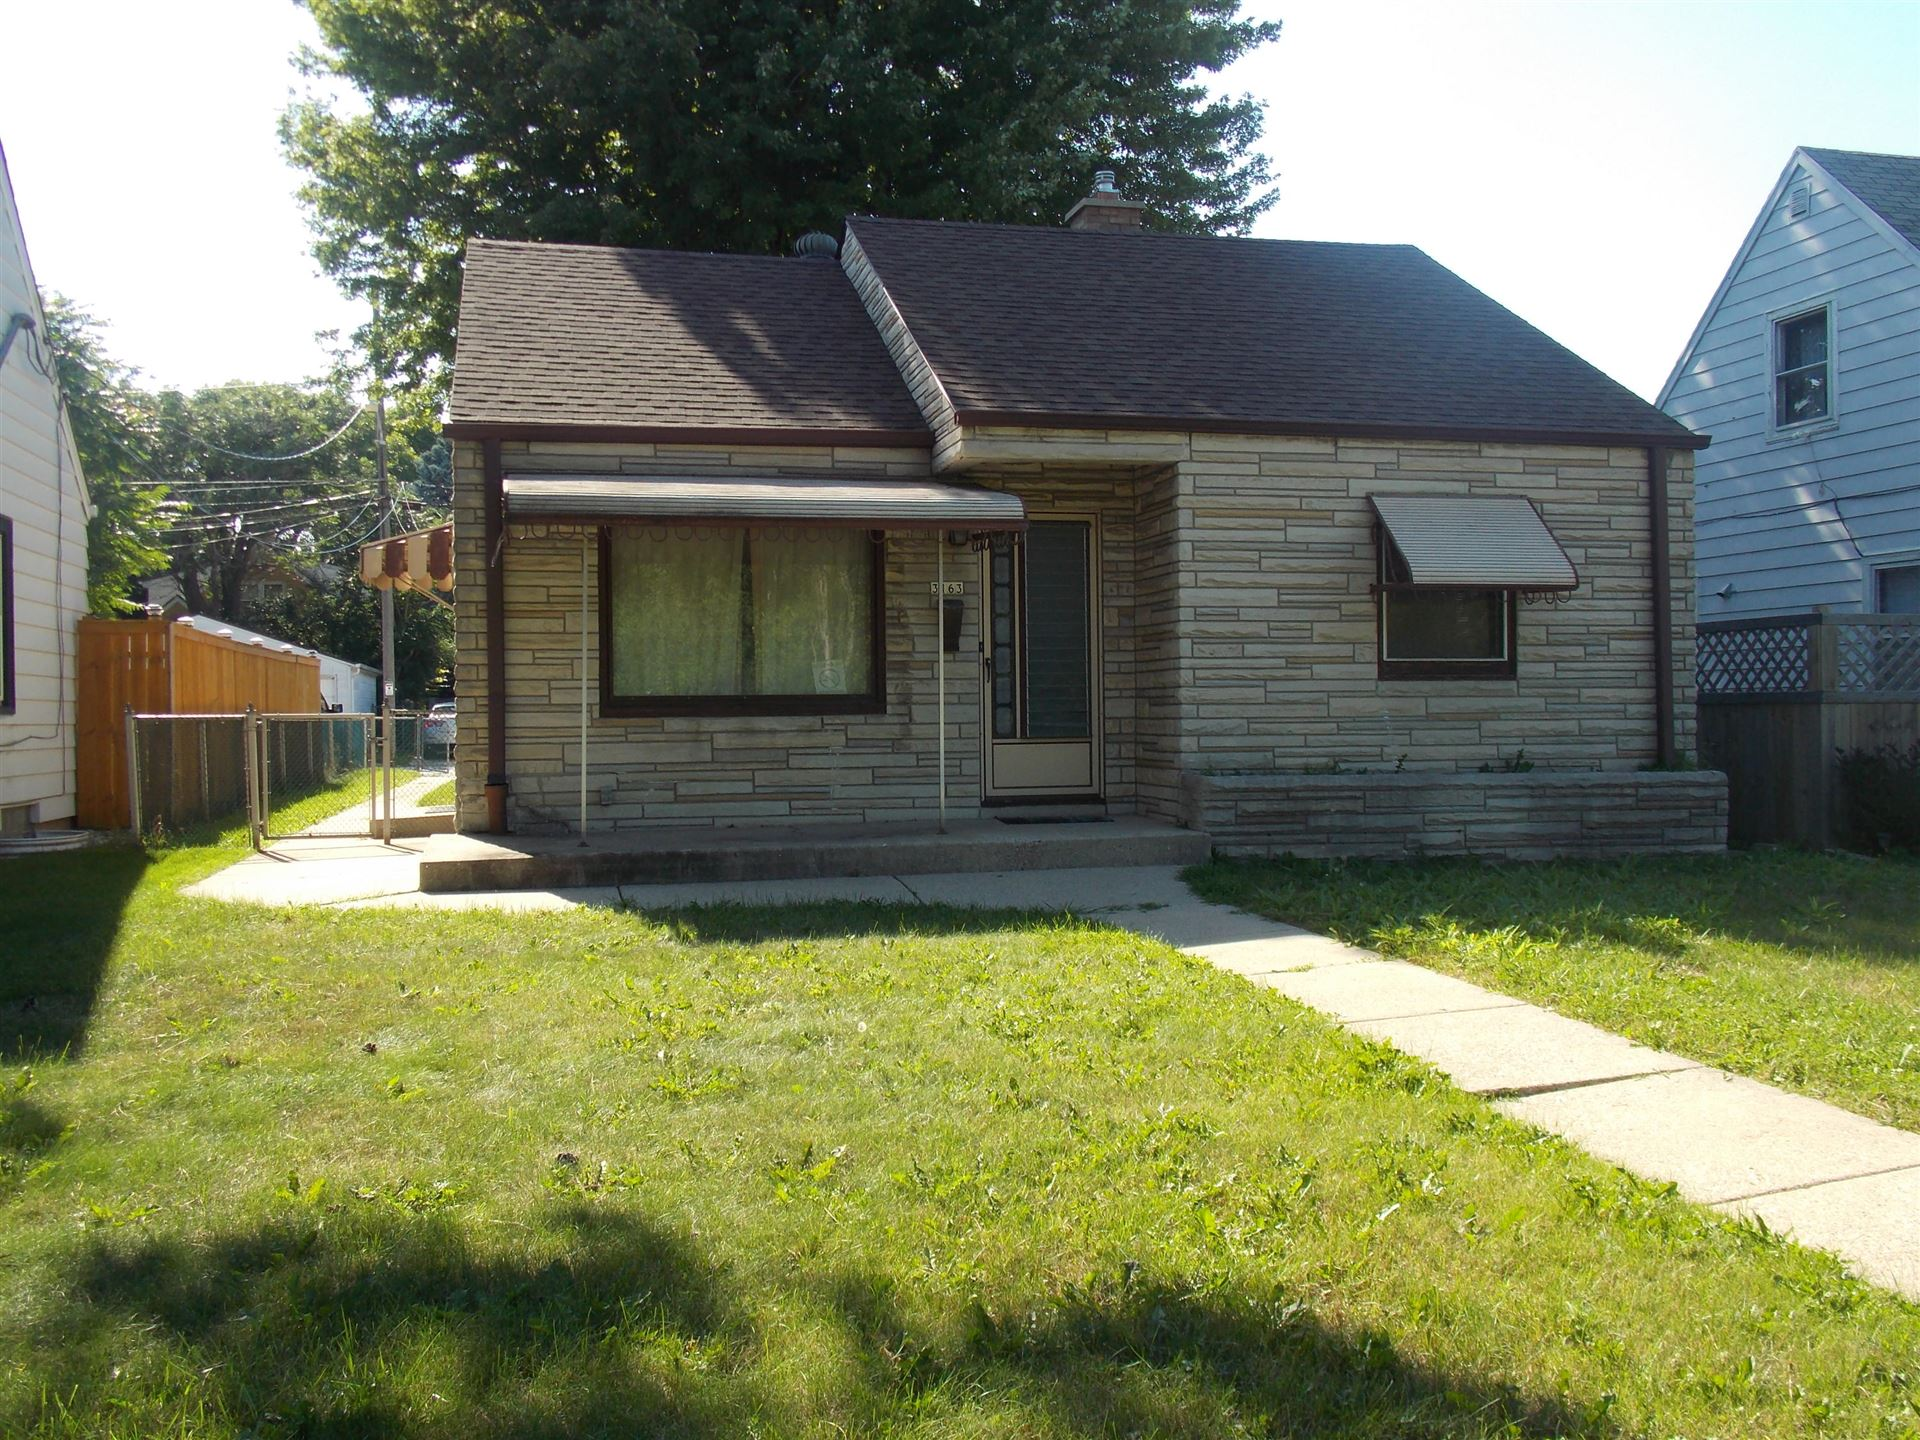 3163 S 6th St, Milwaukee, WI 53215 - #: 1703367